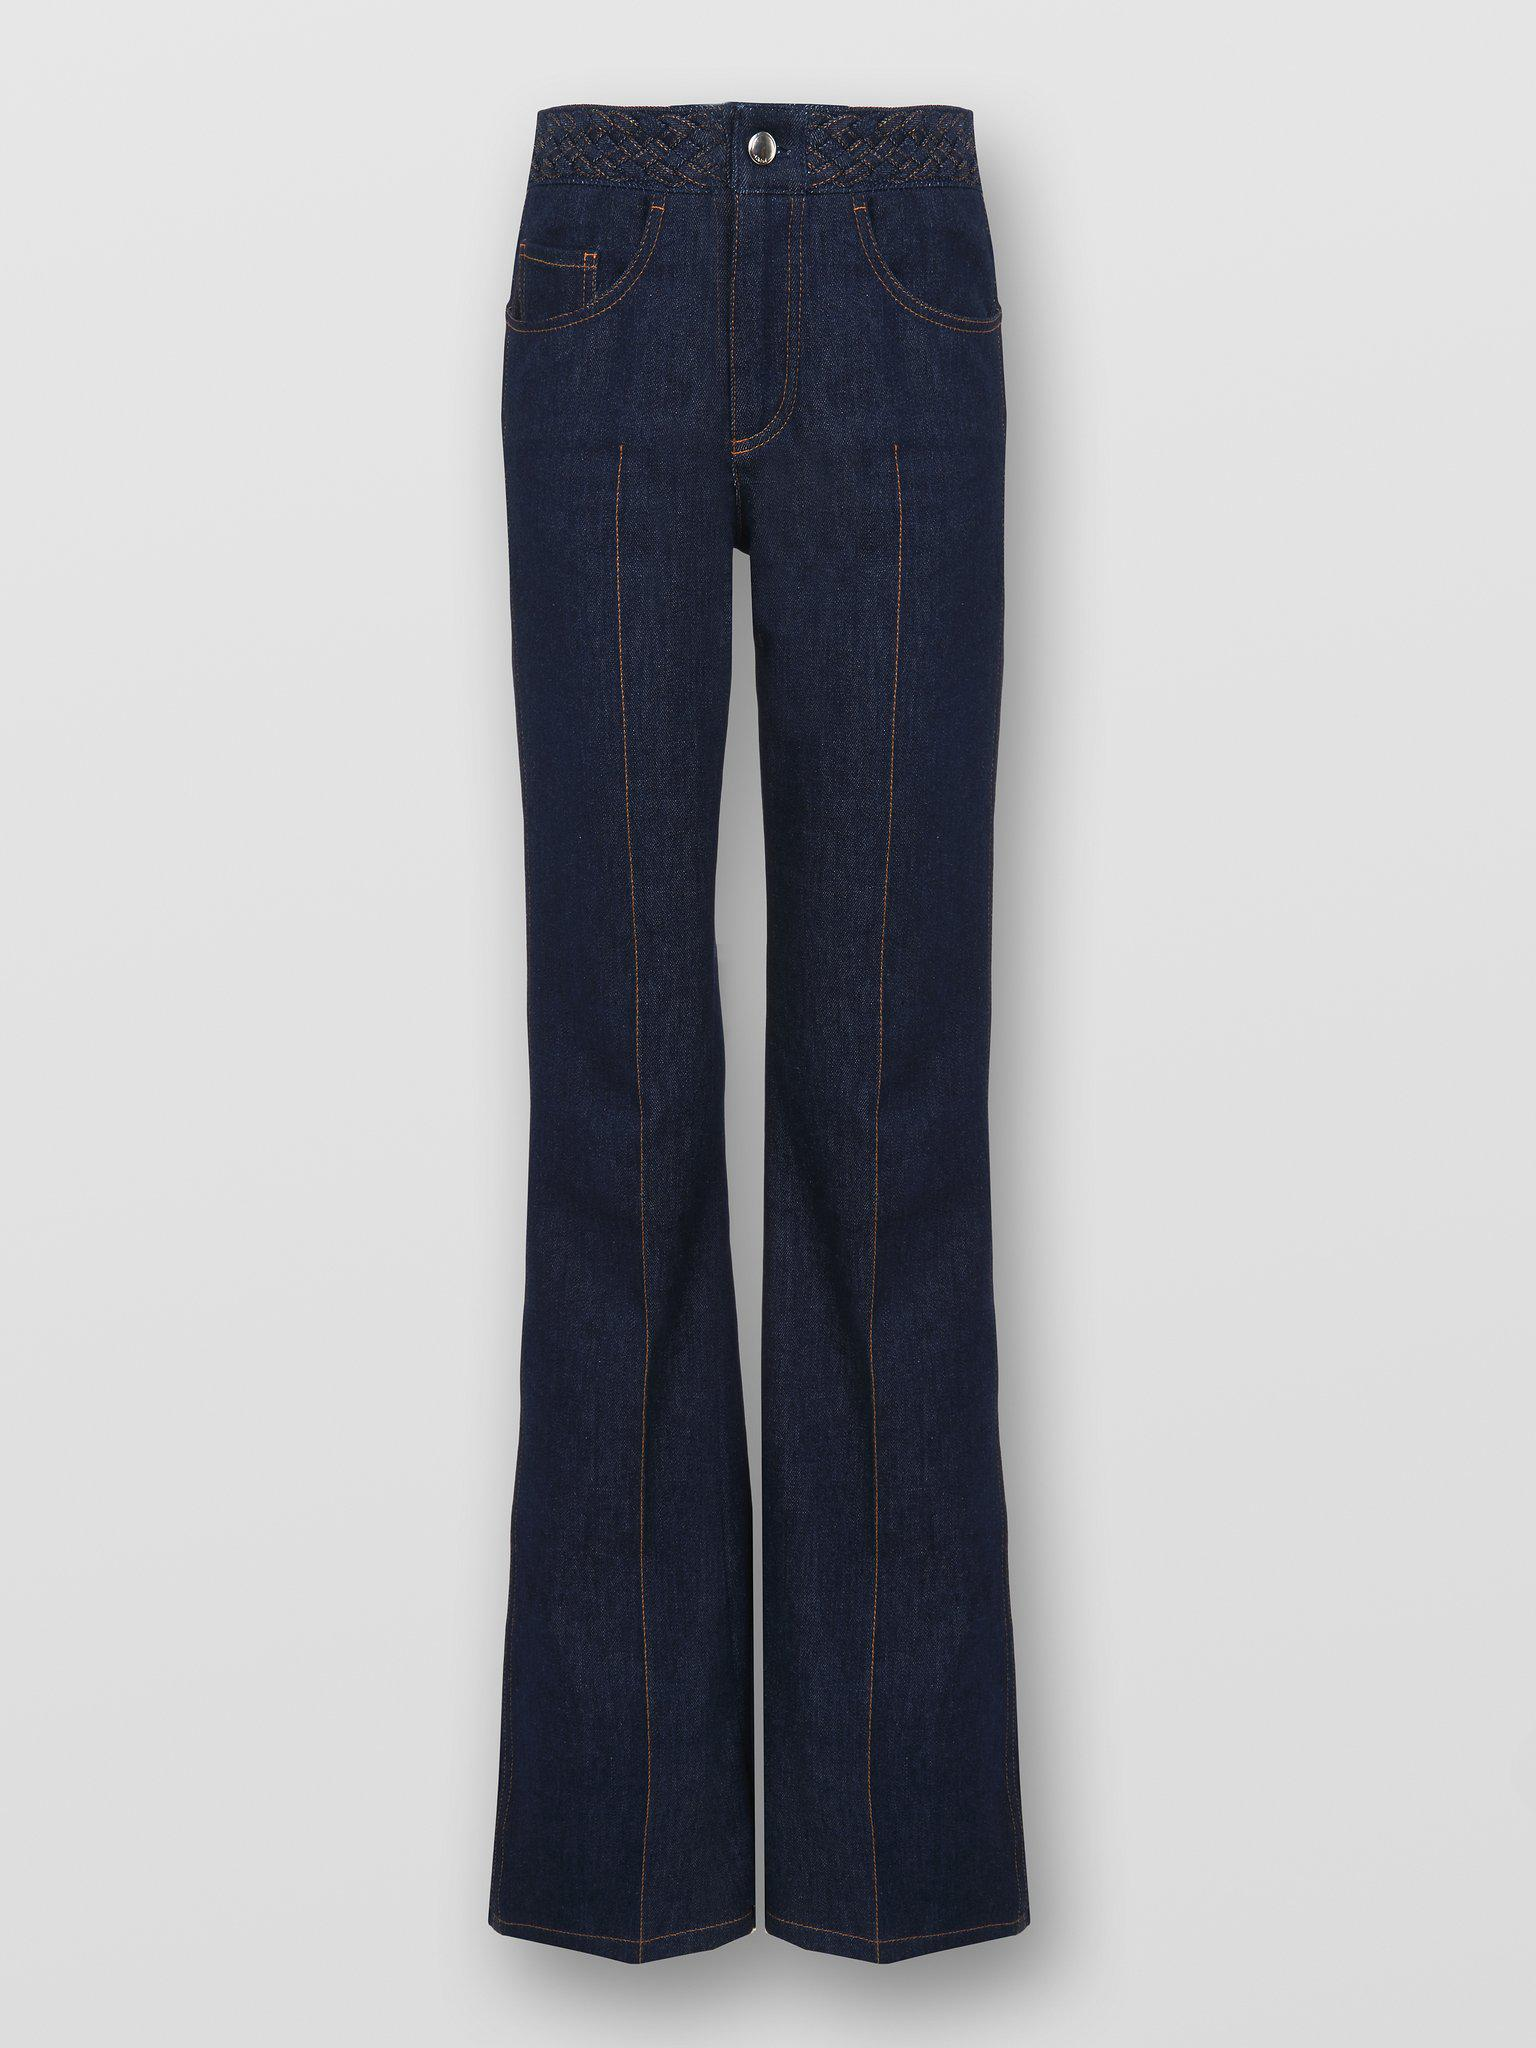 BRAIDED FLARE JEANS